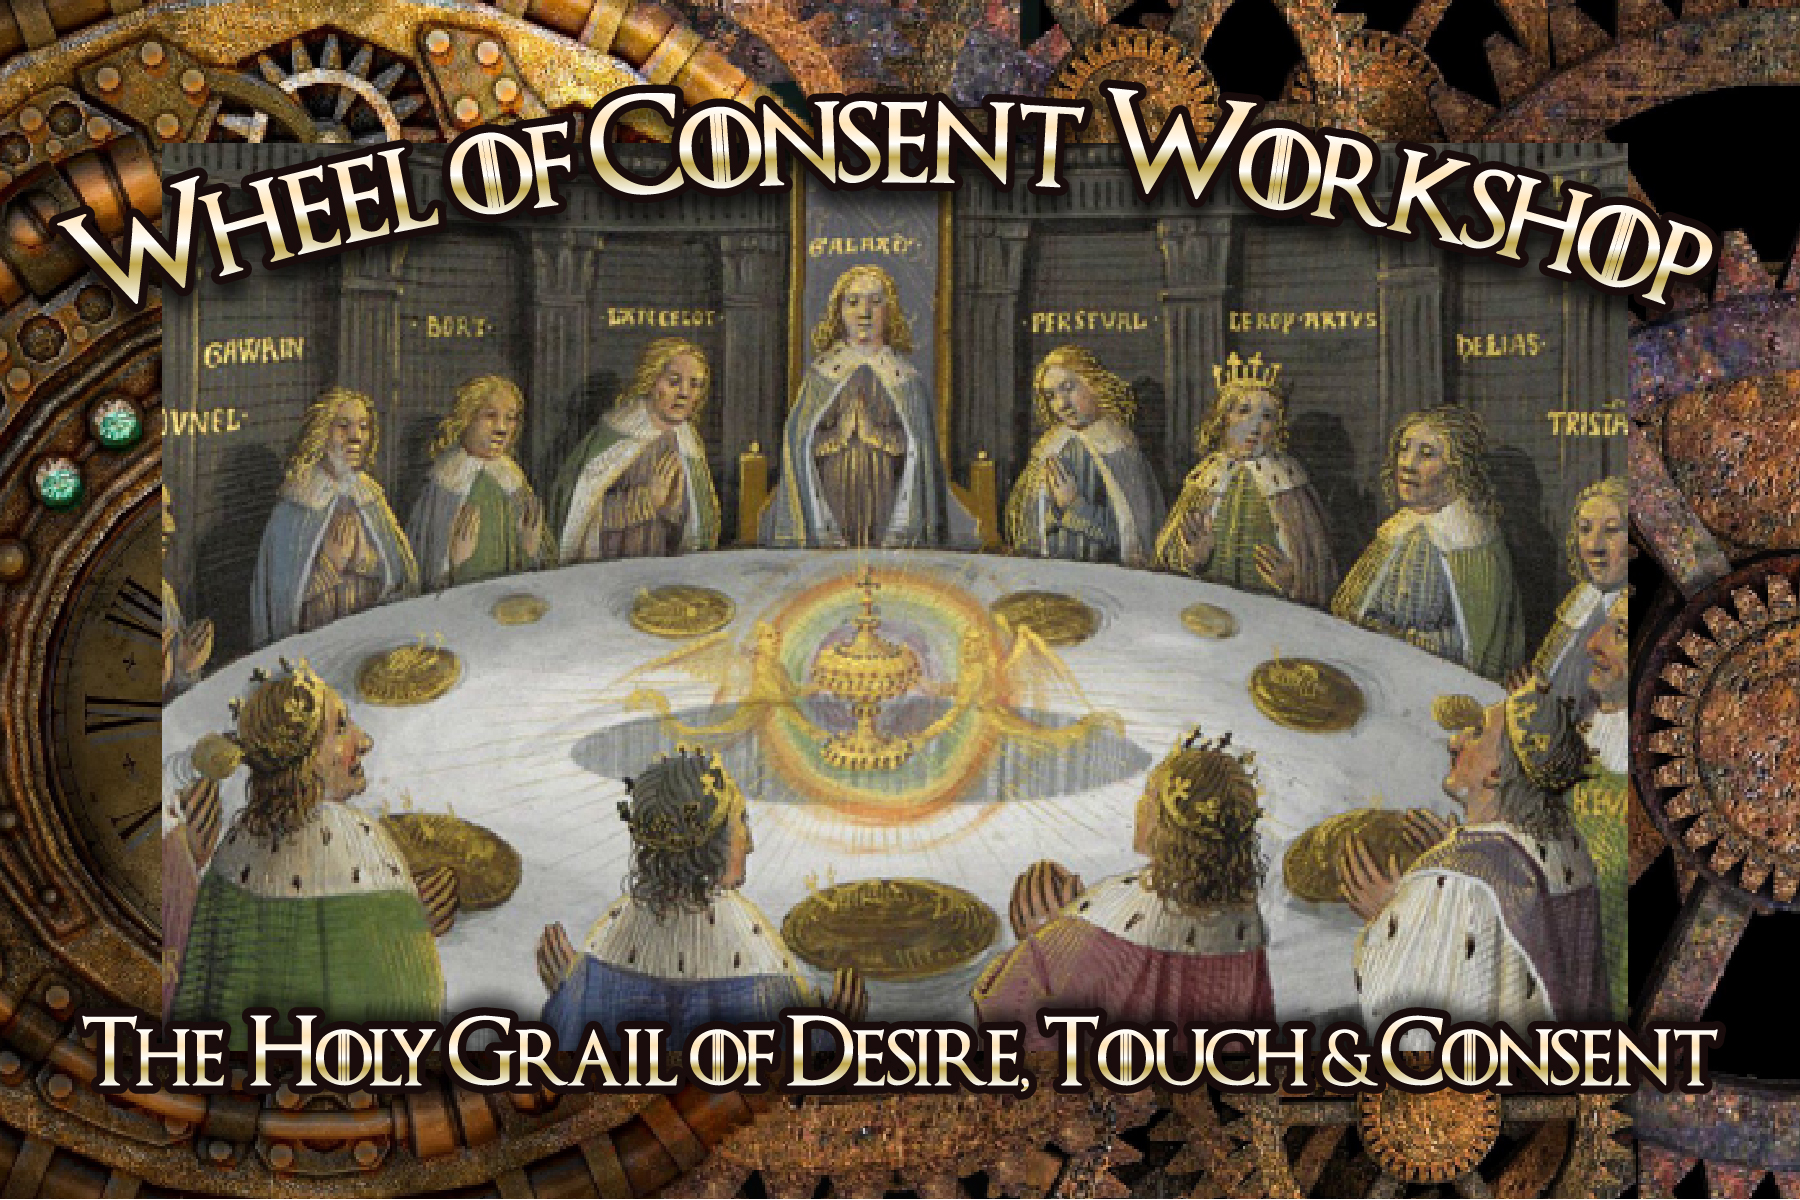 wheel of consent workshop austin.jpg